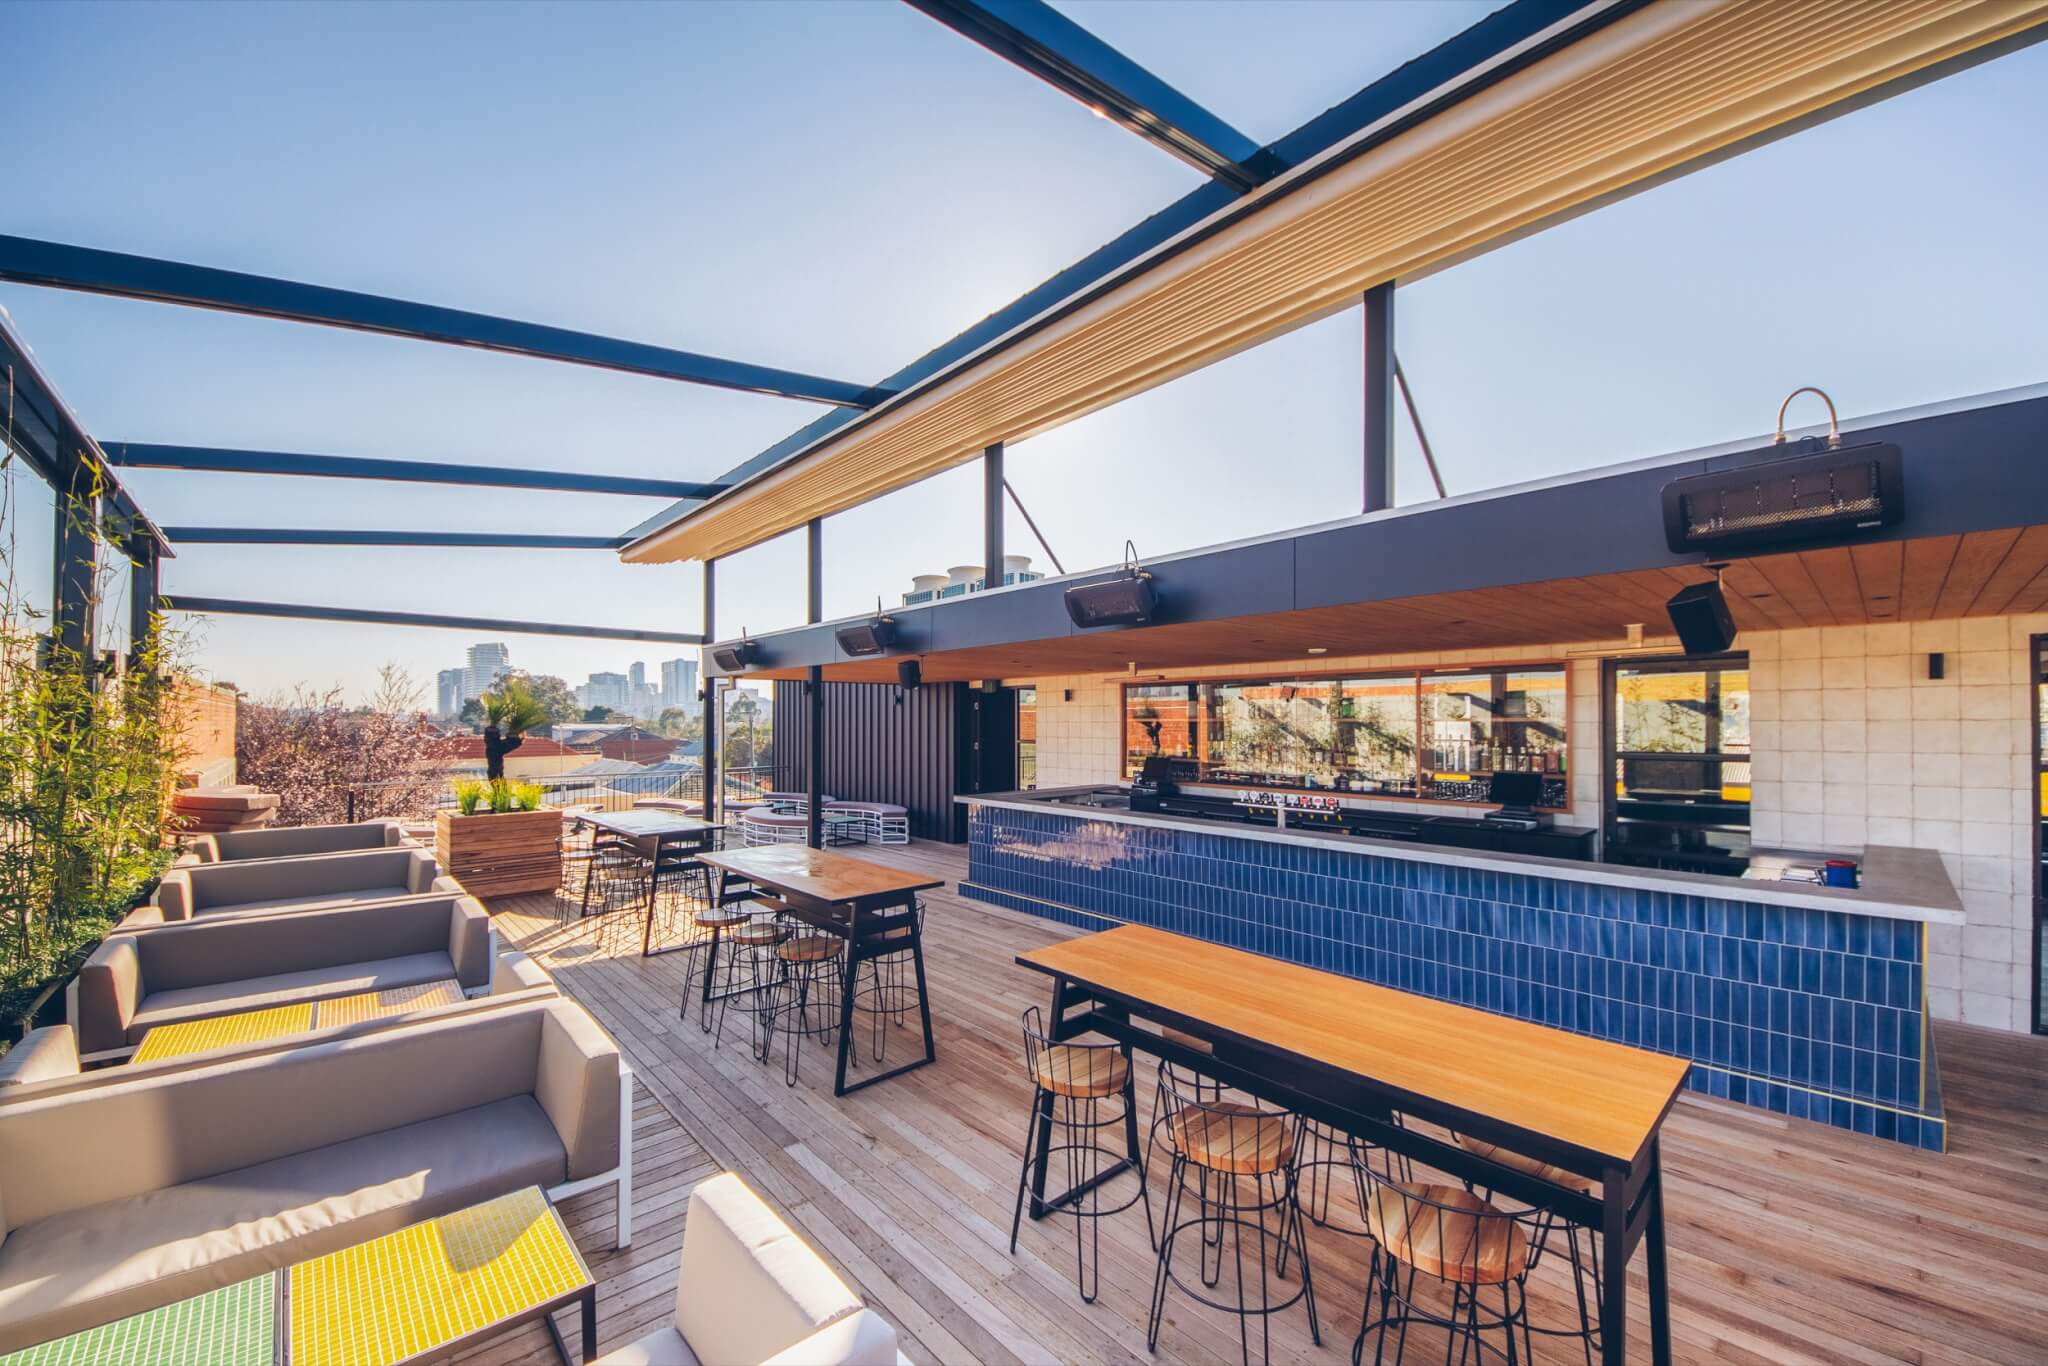 The Osborne Rooftop & Bar